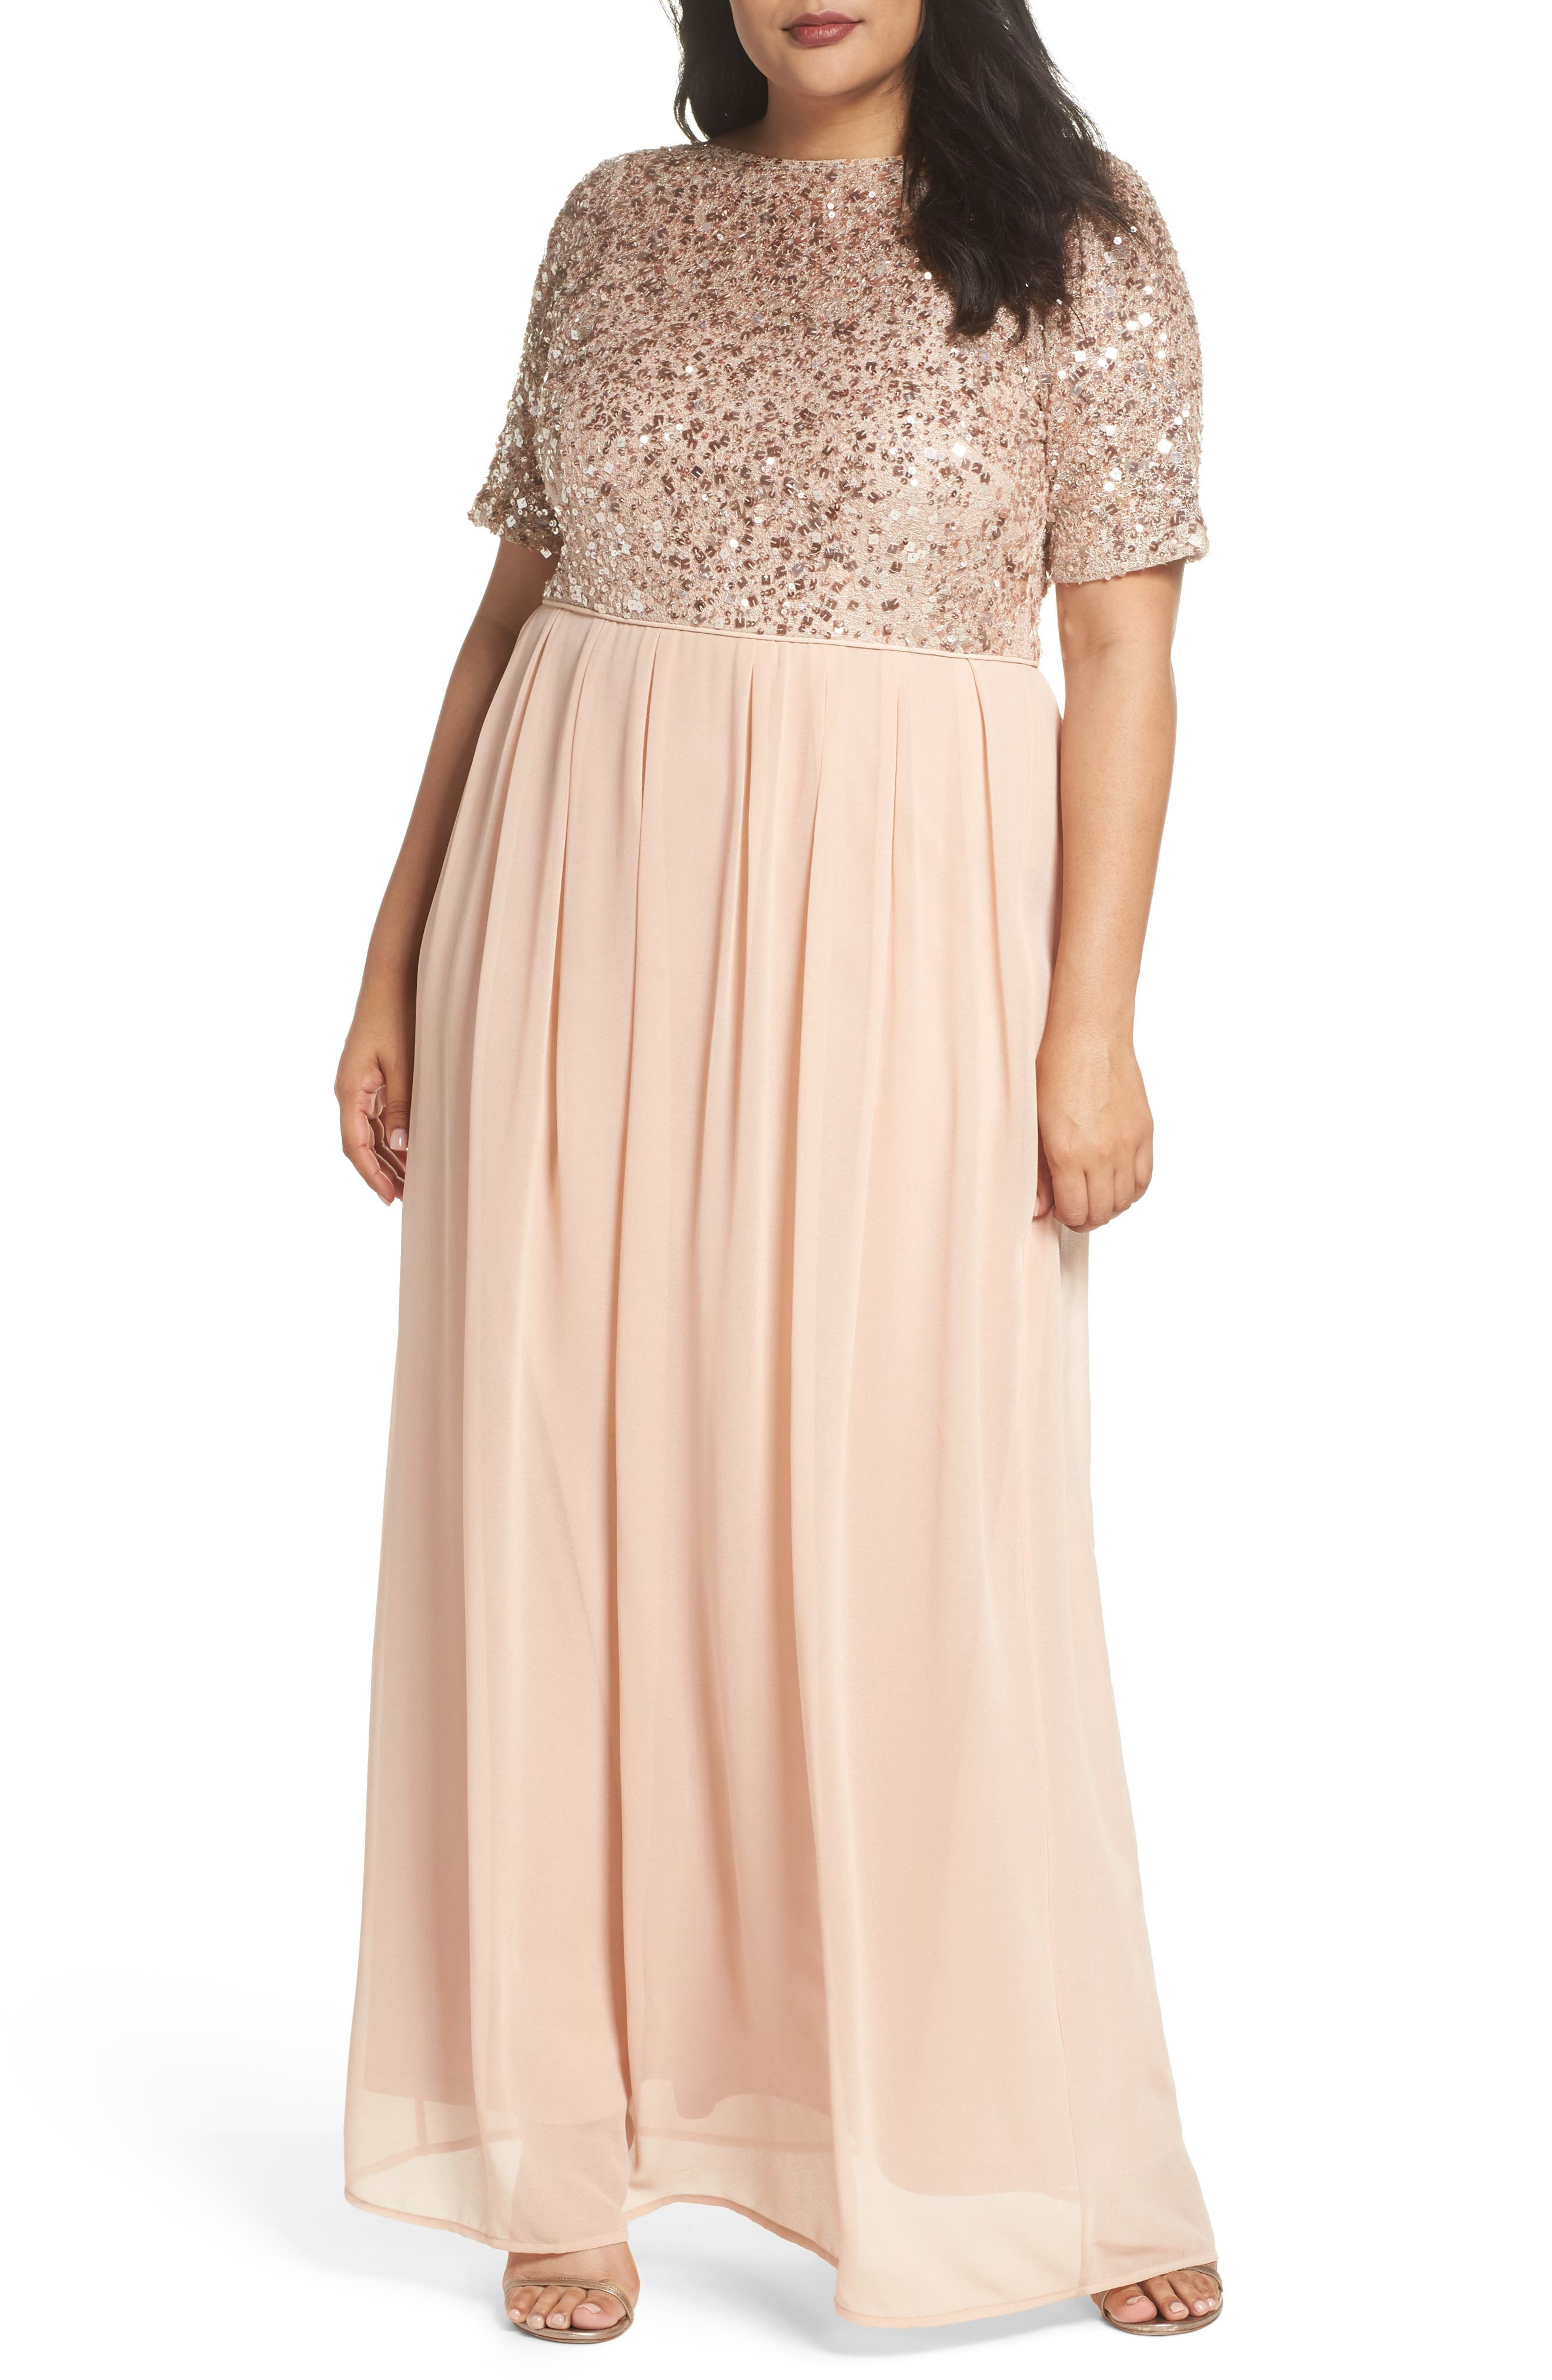 Alternate Image 1 Selected - Adrianna Papell Beaded Metallic Lace Gown (Plus Size)